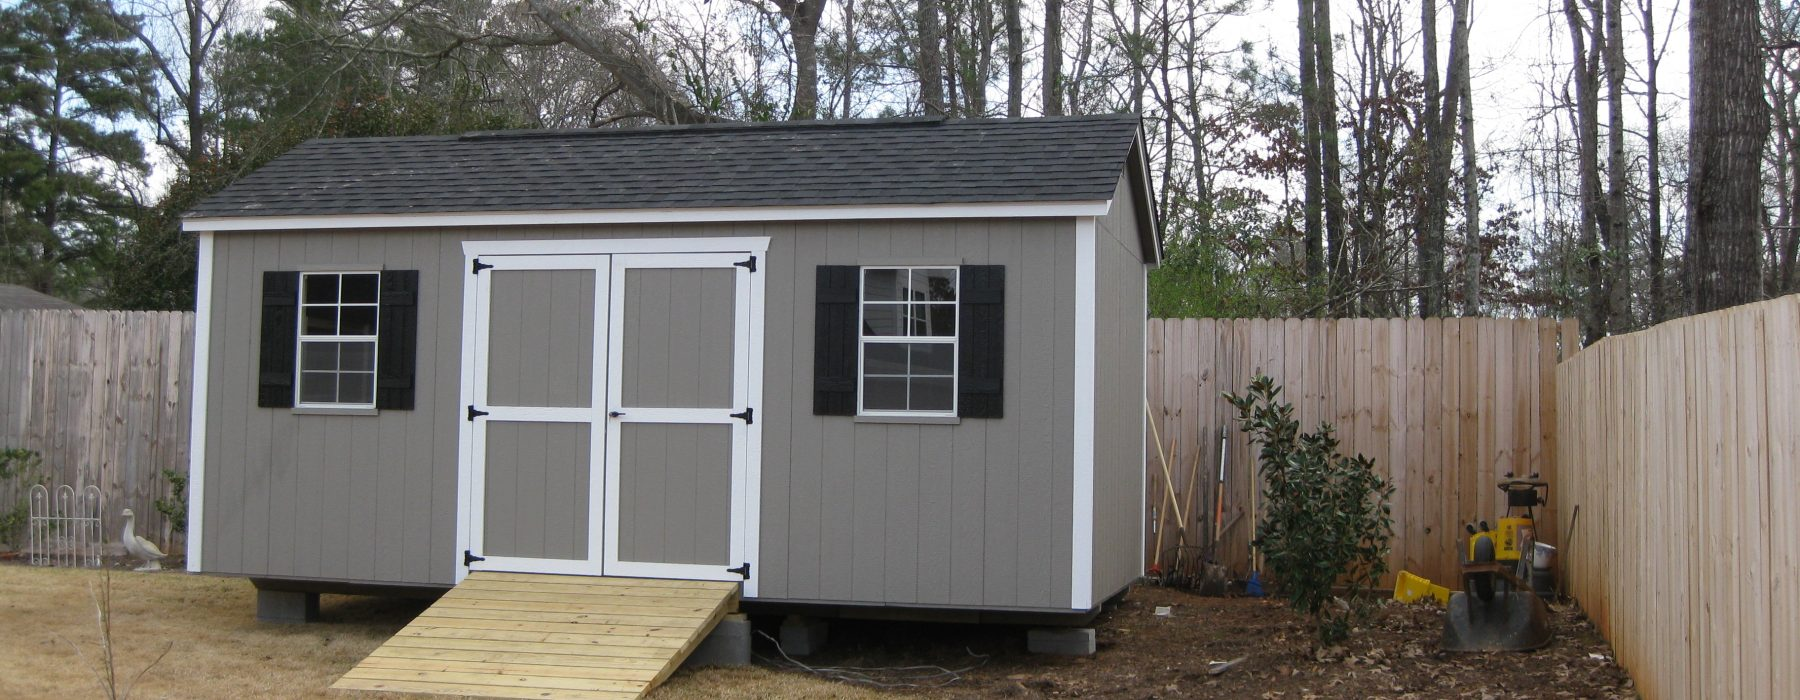 Wooden Garden Sheds For Sale in GA | DuraStor Structures on Backyard Landscaping Near Me id=56553